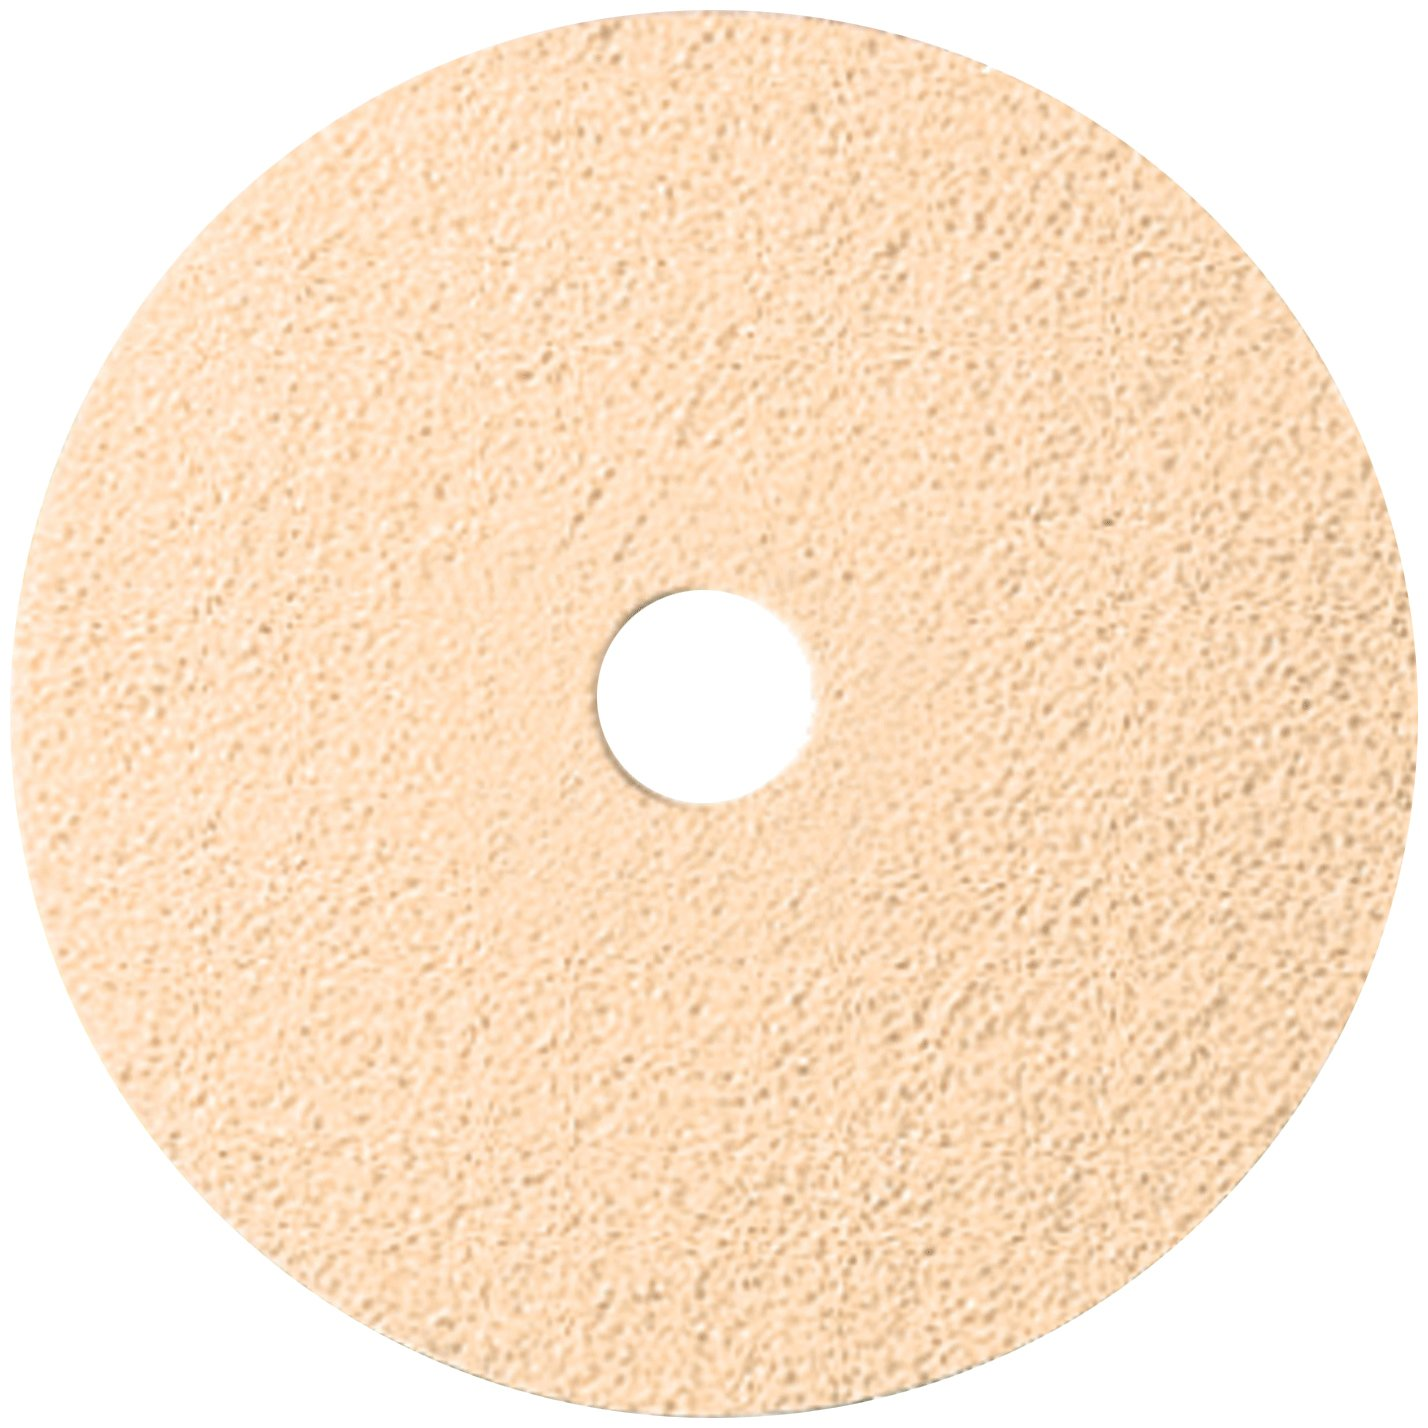 3M TopLine Speed Burnish Pad 3200, 21'' (Case of 5) by 3M